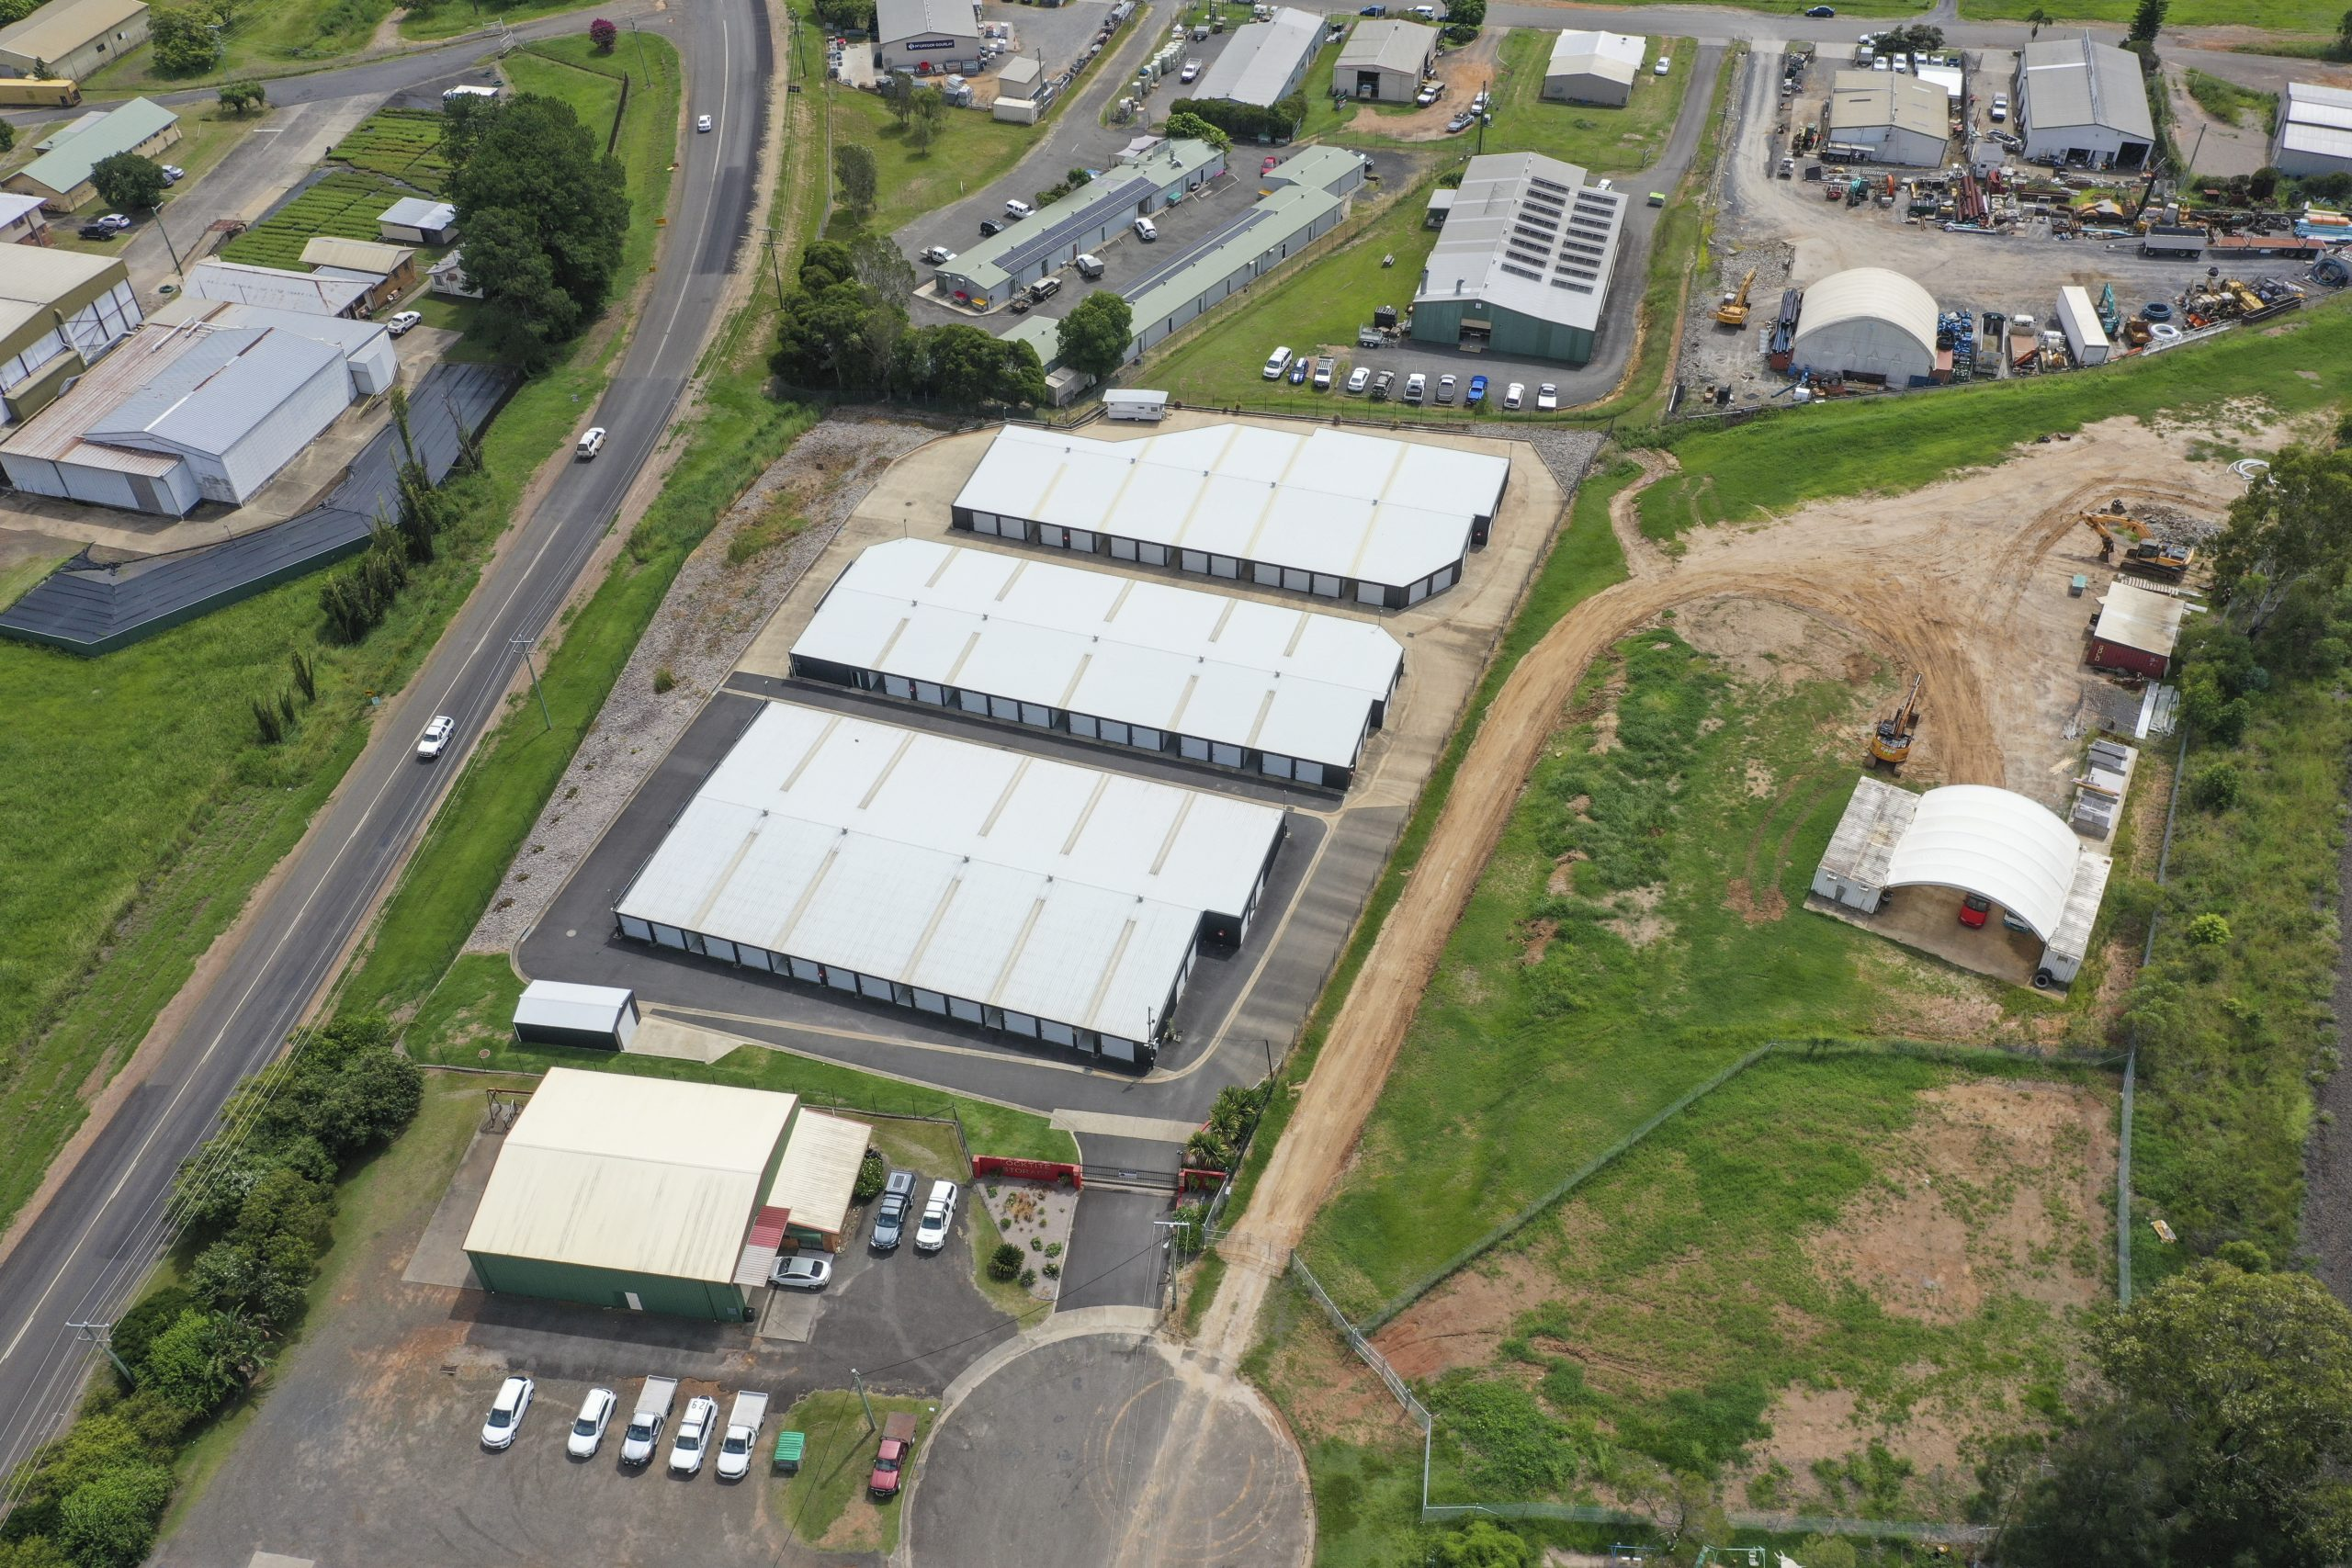 aerial view of storage facility